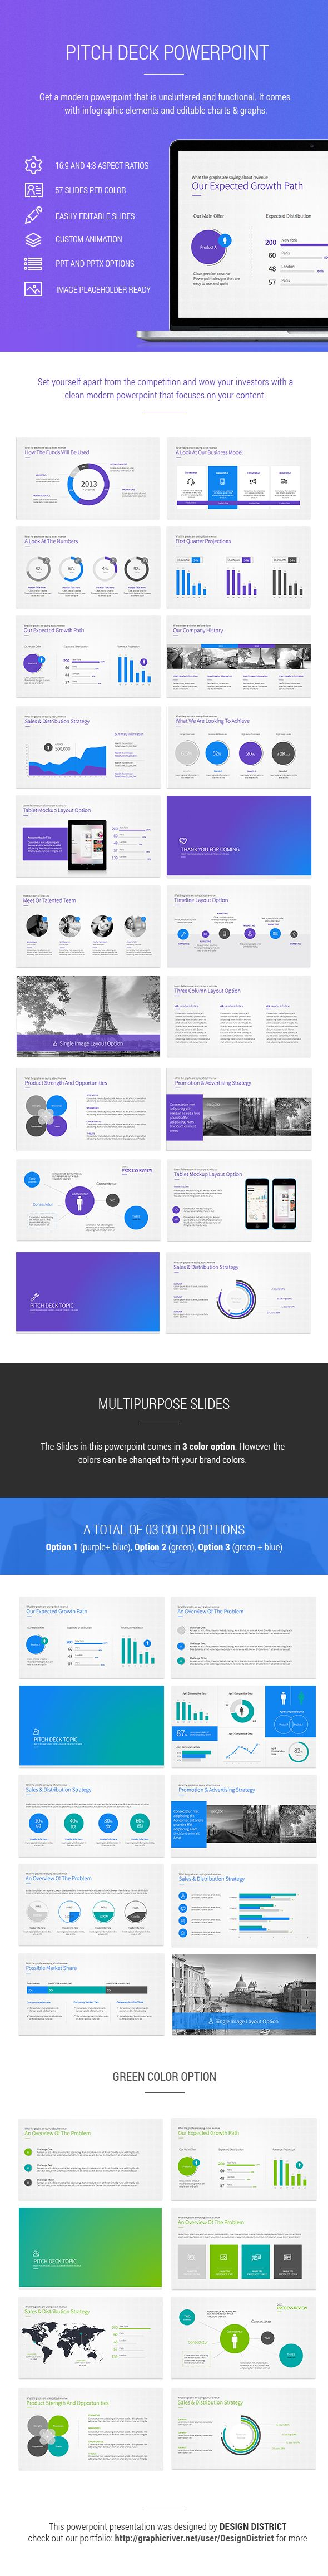 Modern Powerpoint Template.